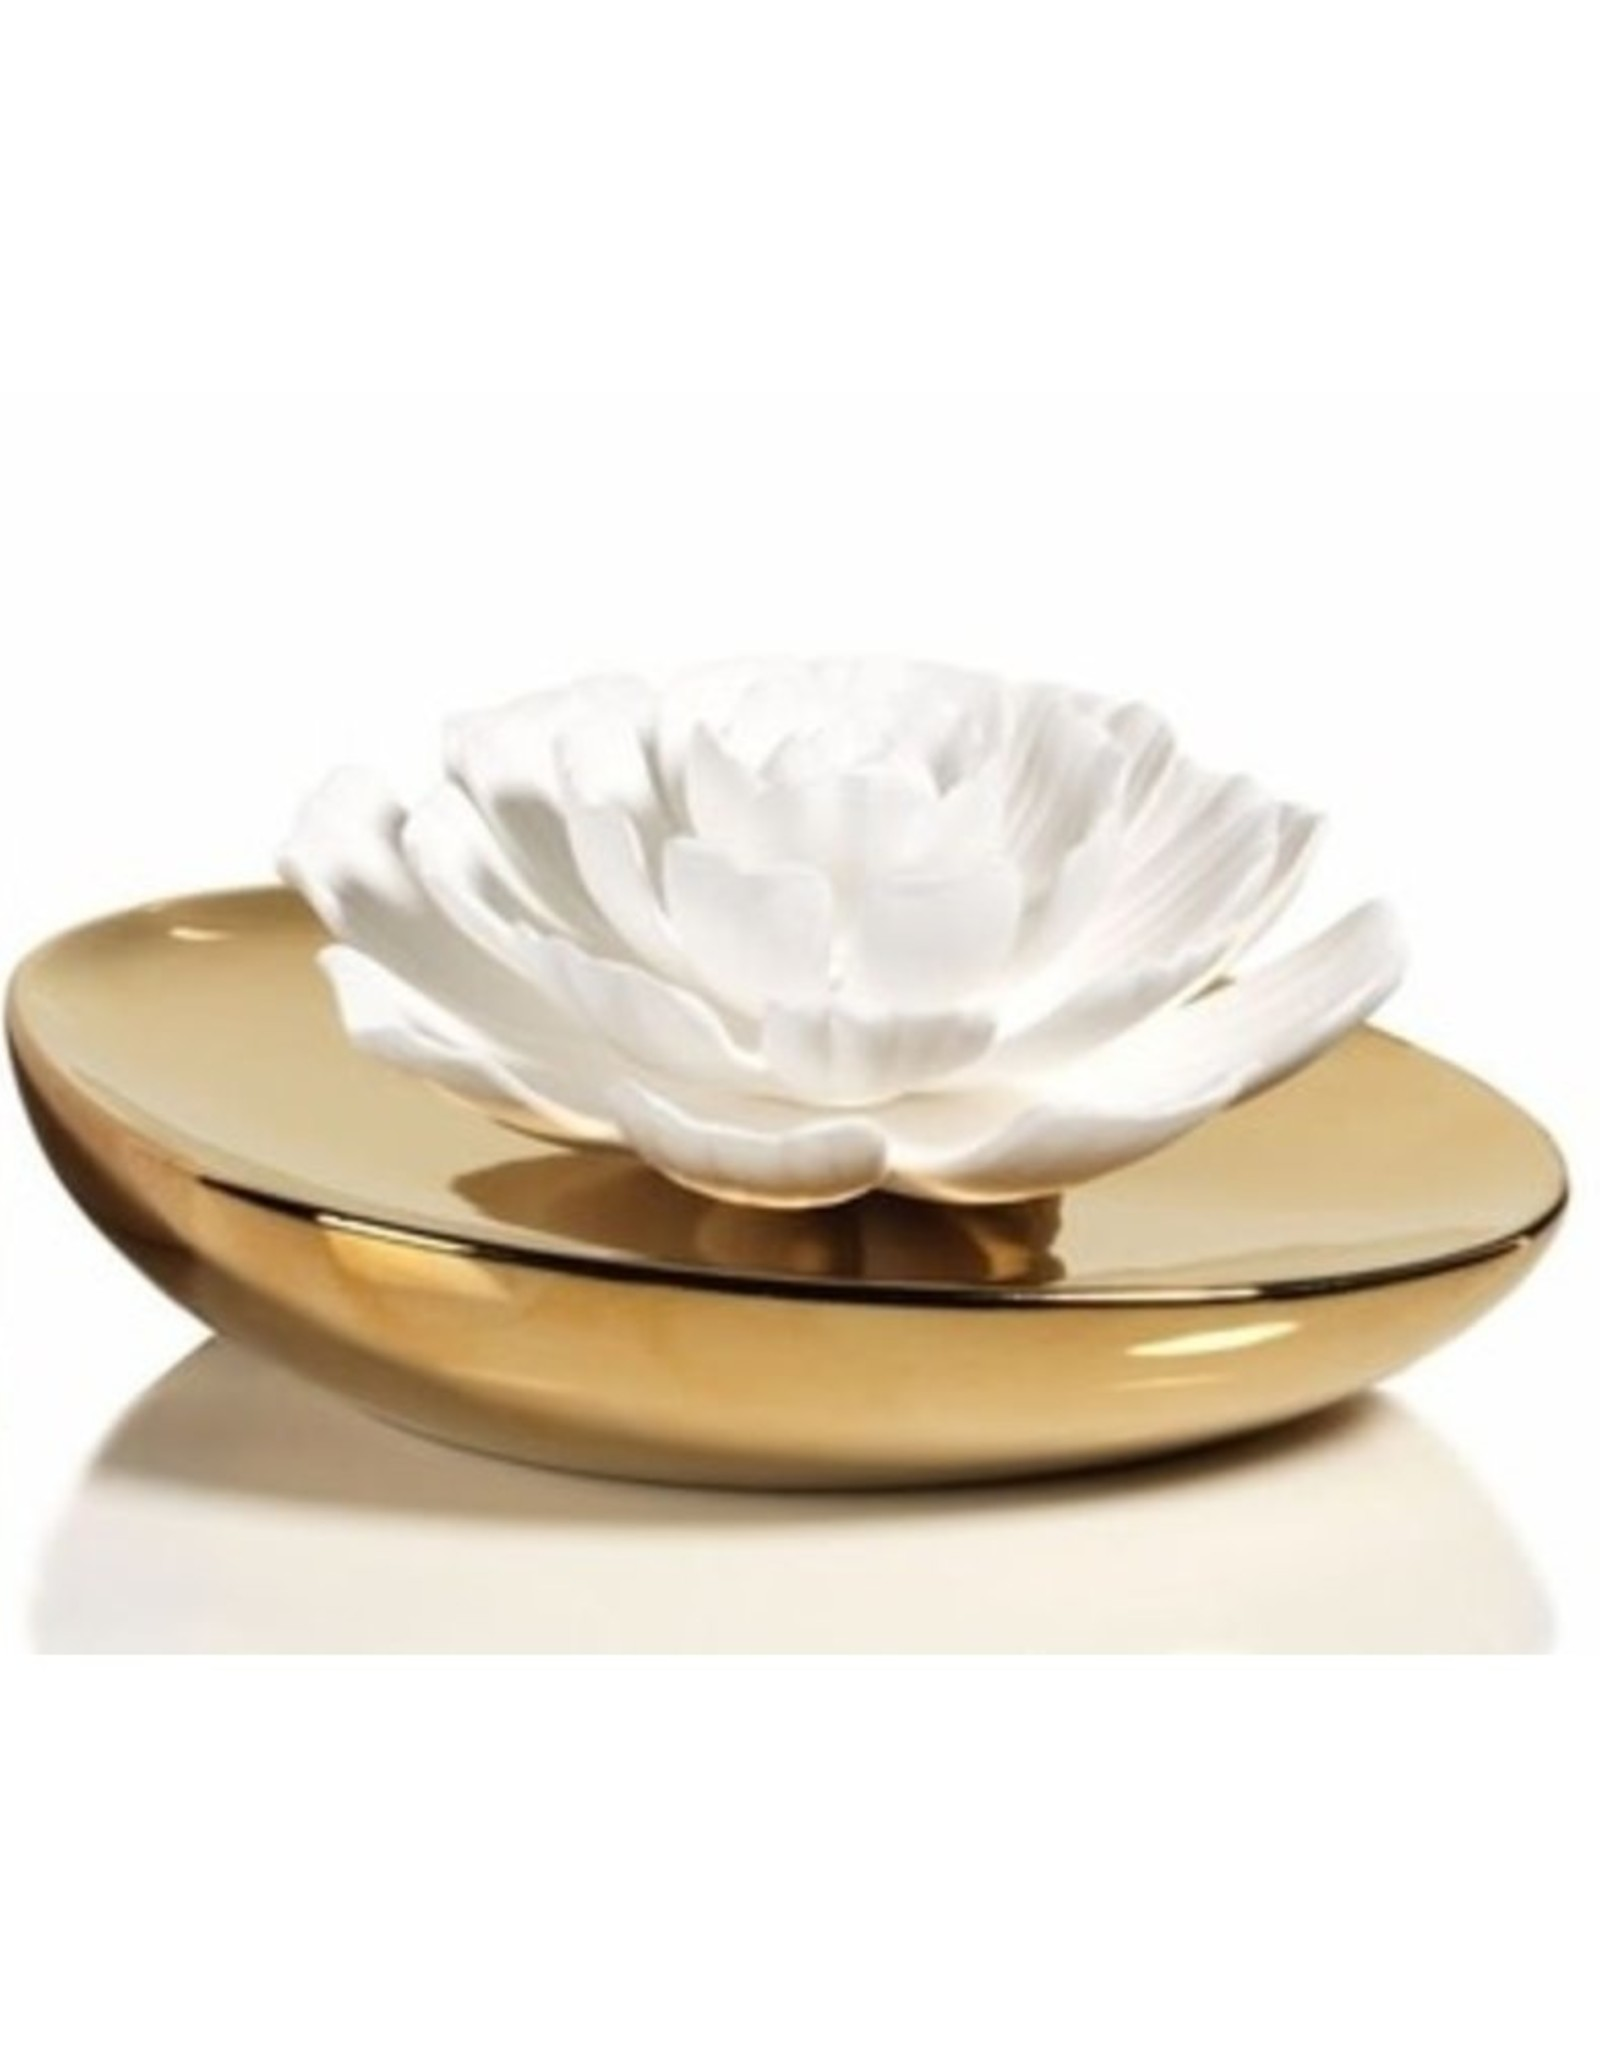 Zodax Dream Porcelain Flower Diffuser-Moroccan Peony